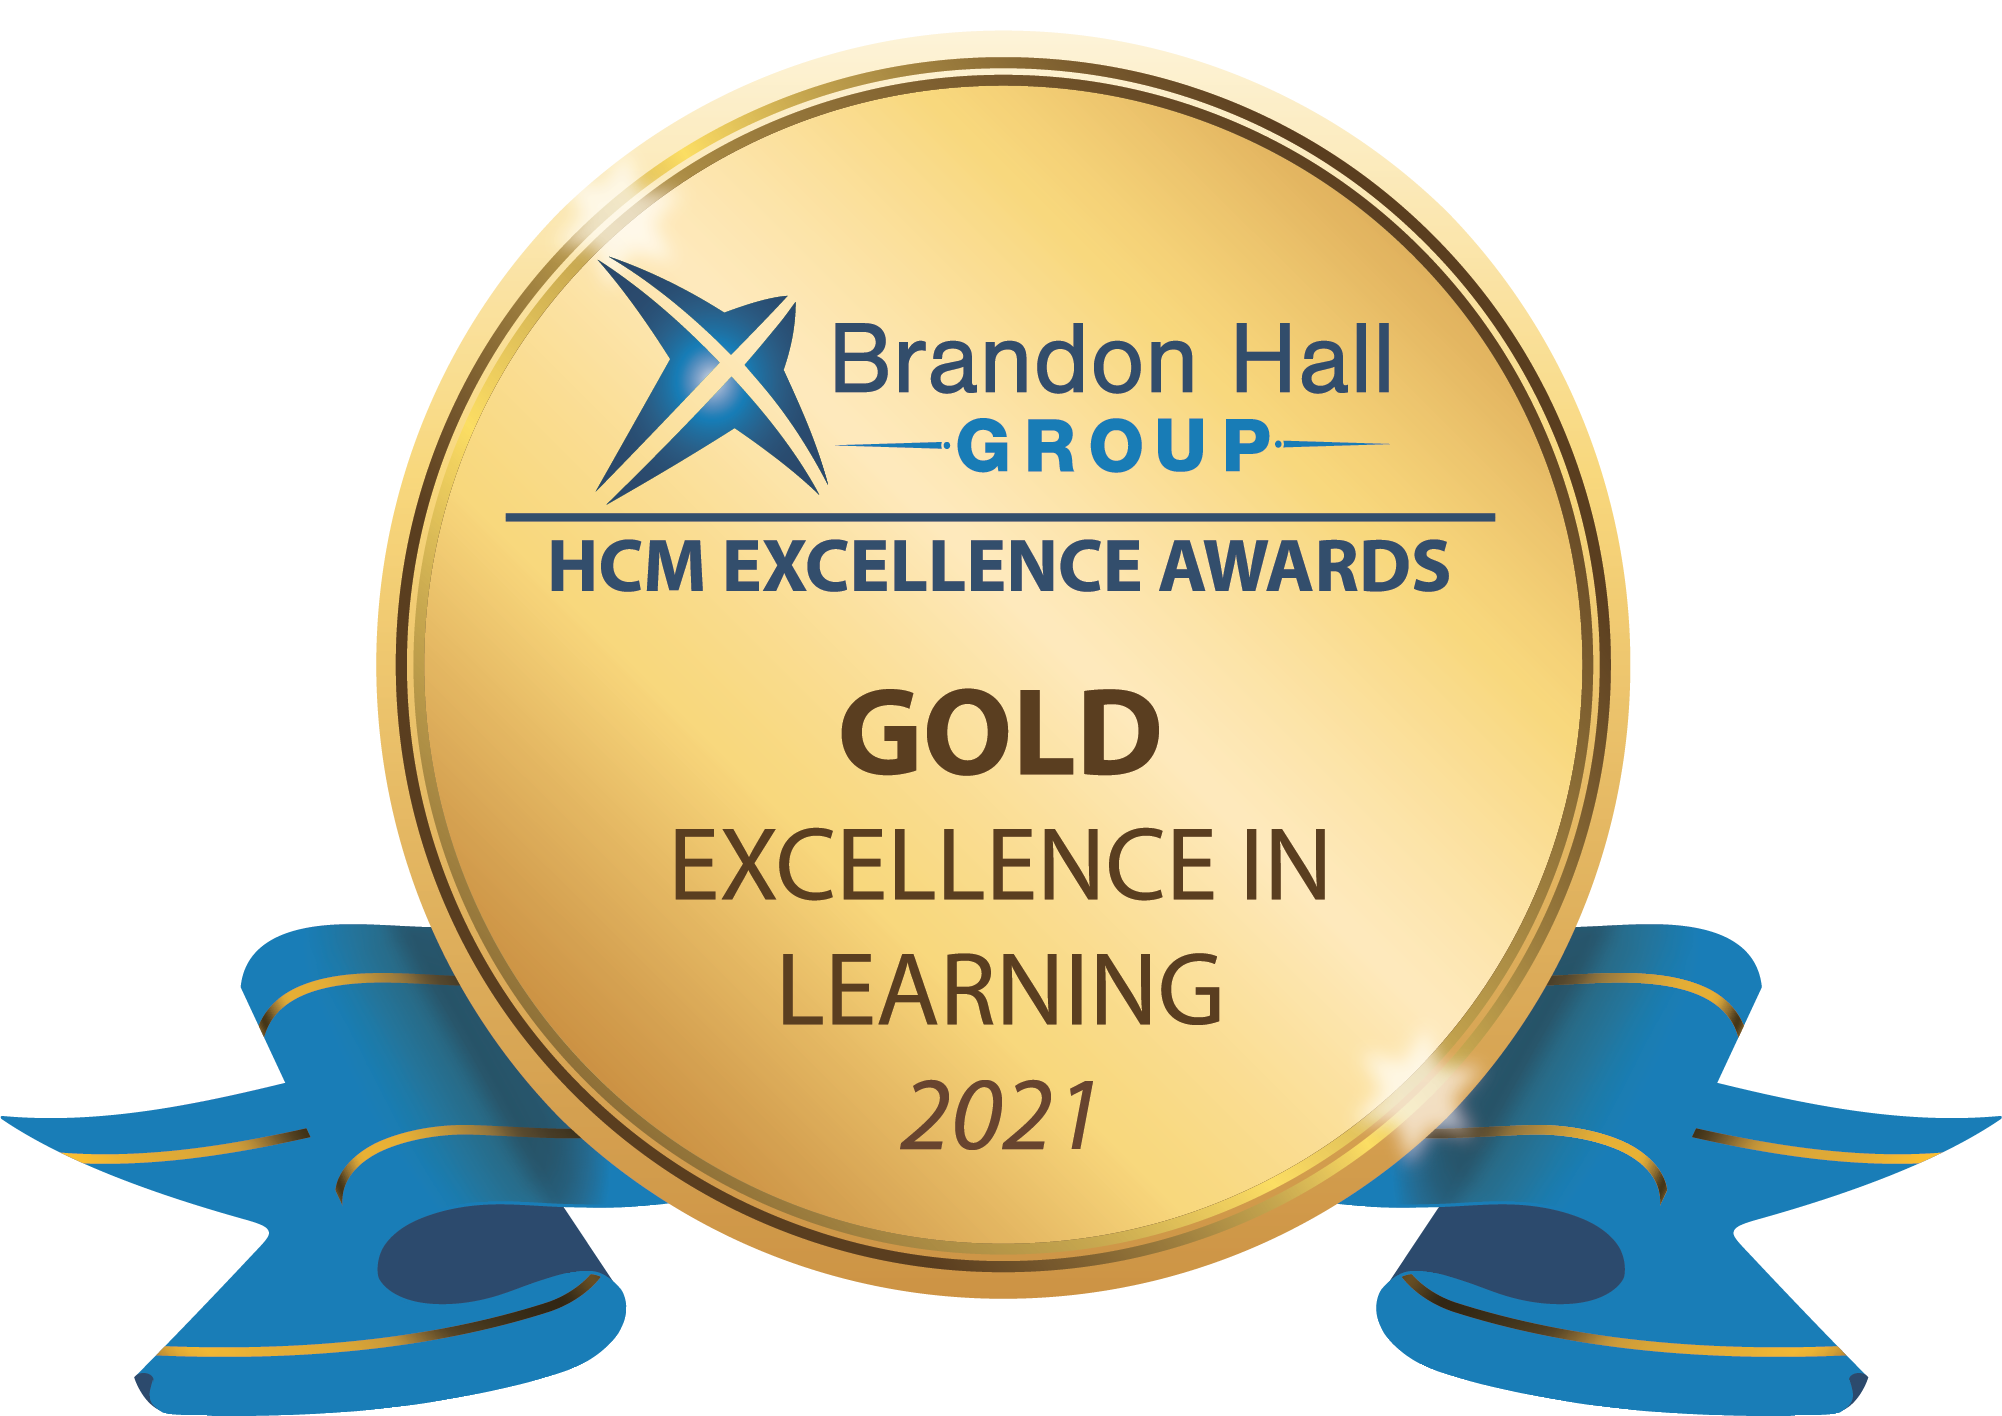 for organizations like Zuora who won the excellence in learning award at Brandon Hall